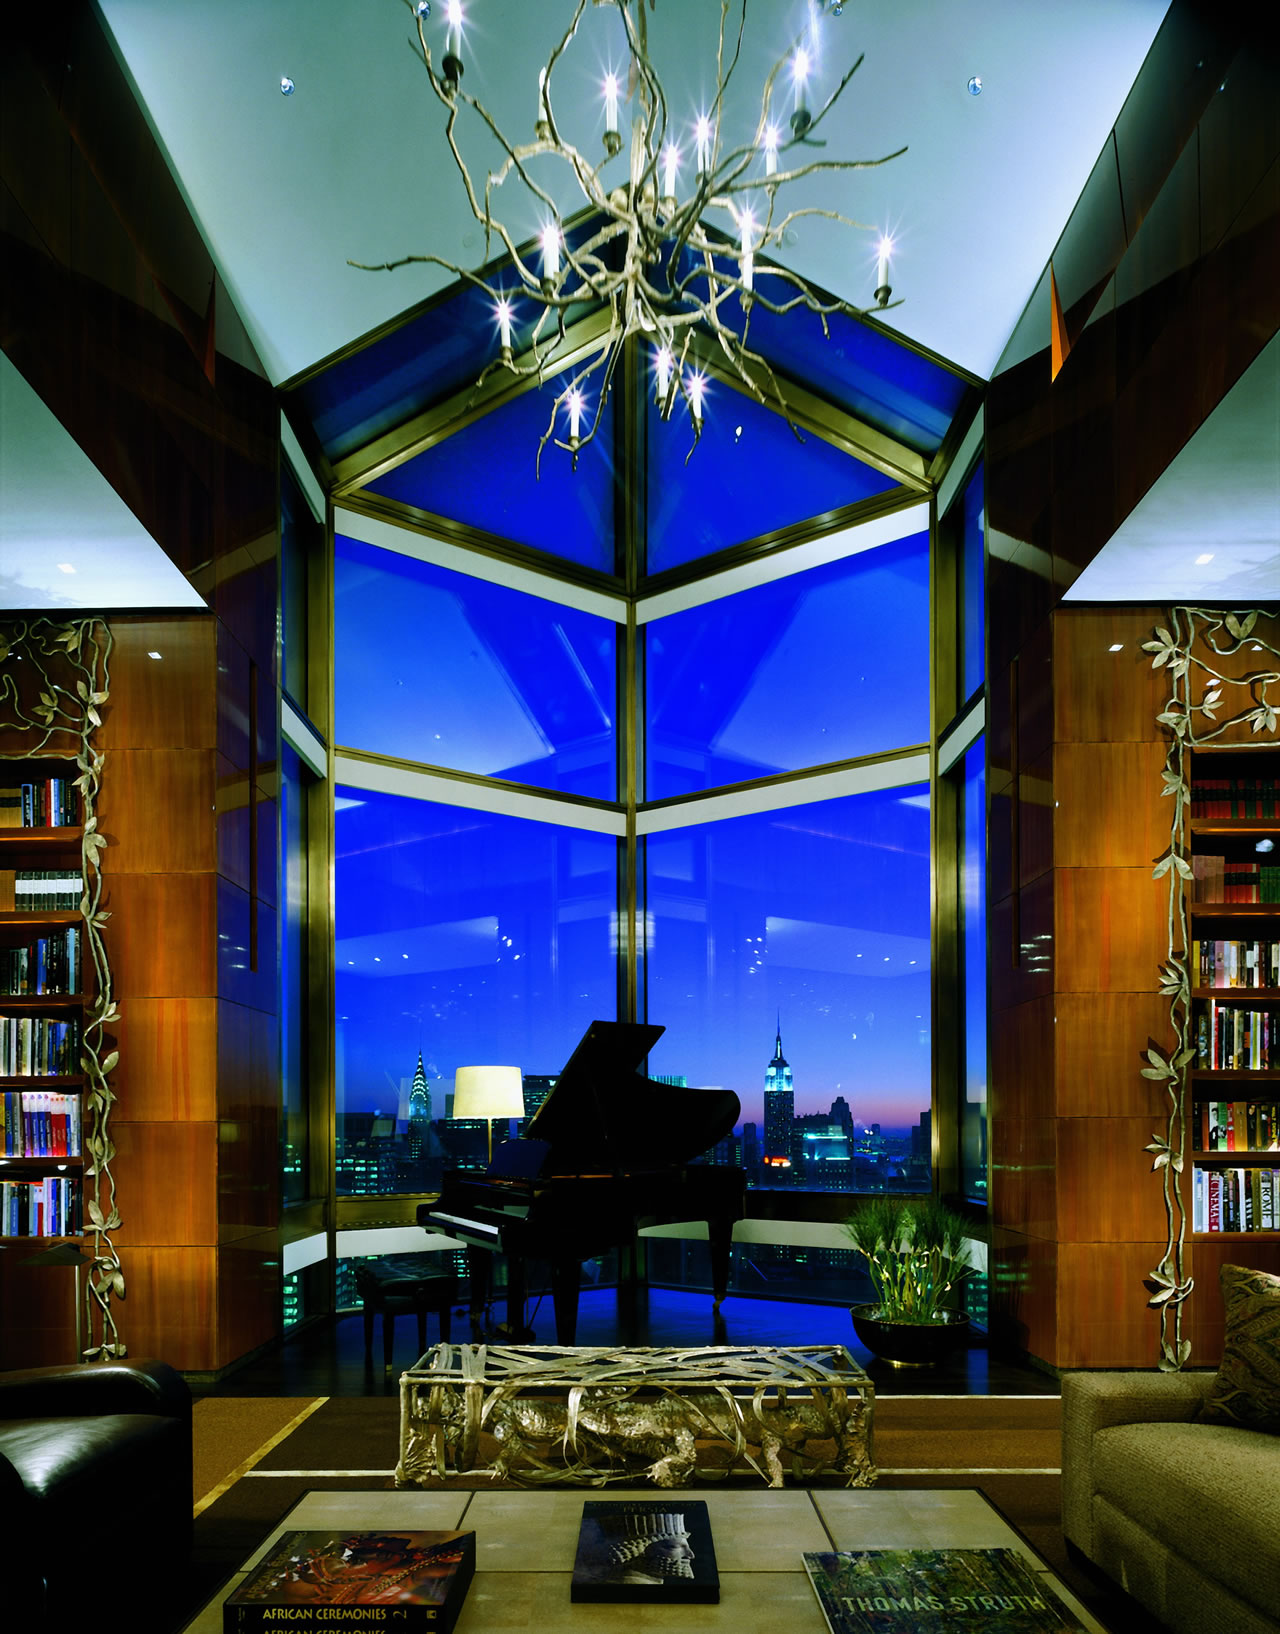 Top 10 most expensive hotel suites in the world 2011 the for Most expensive hotel in nyc